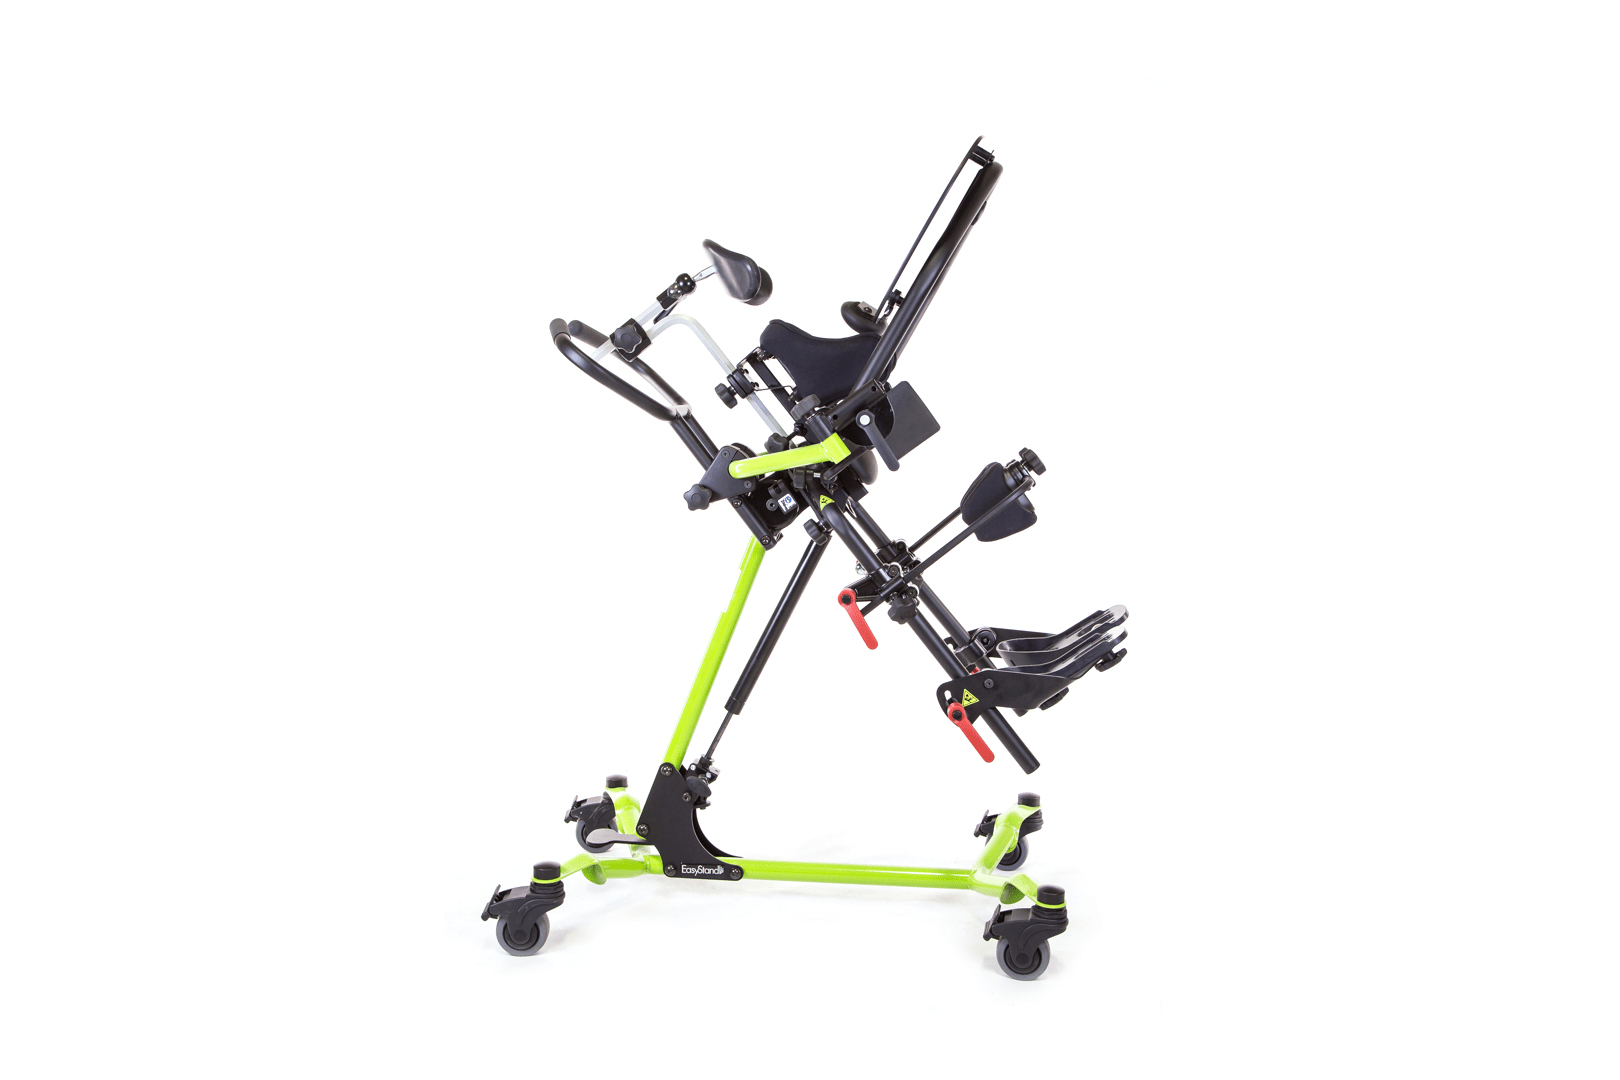 Easystand Zing Mps Size 1 Pa